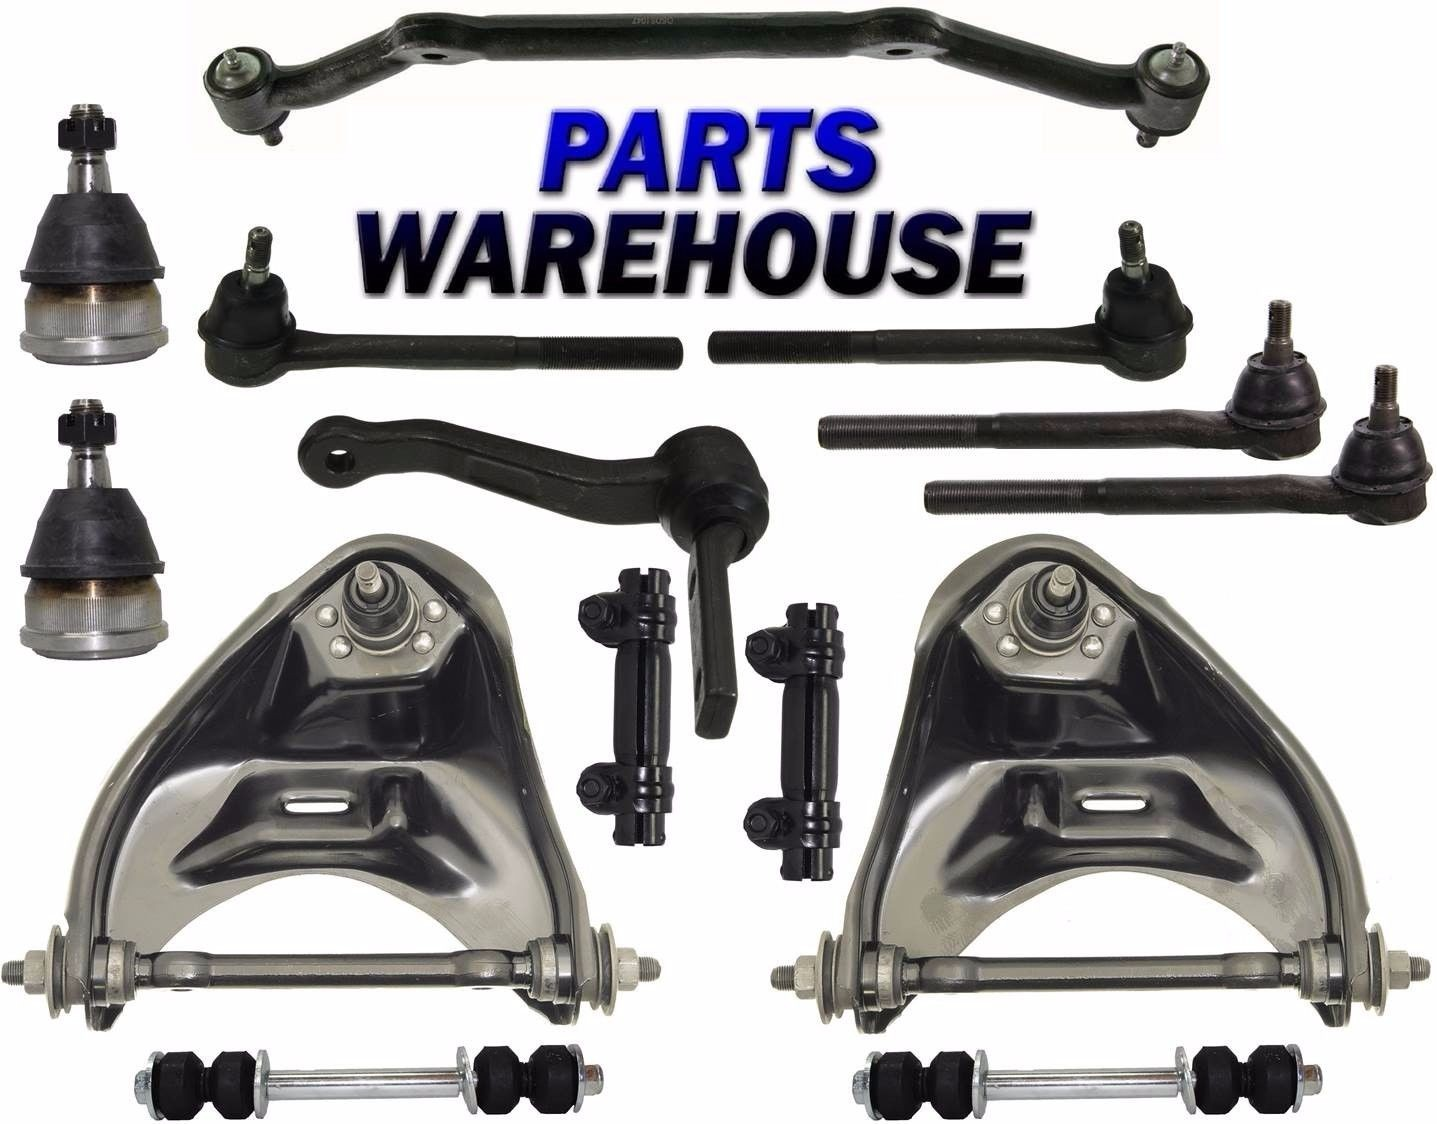 hight resolution of 14 pcs kit front suspension for chevrolet blazer s10 gmc jimmy sonoma 2wd